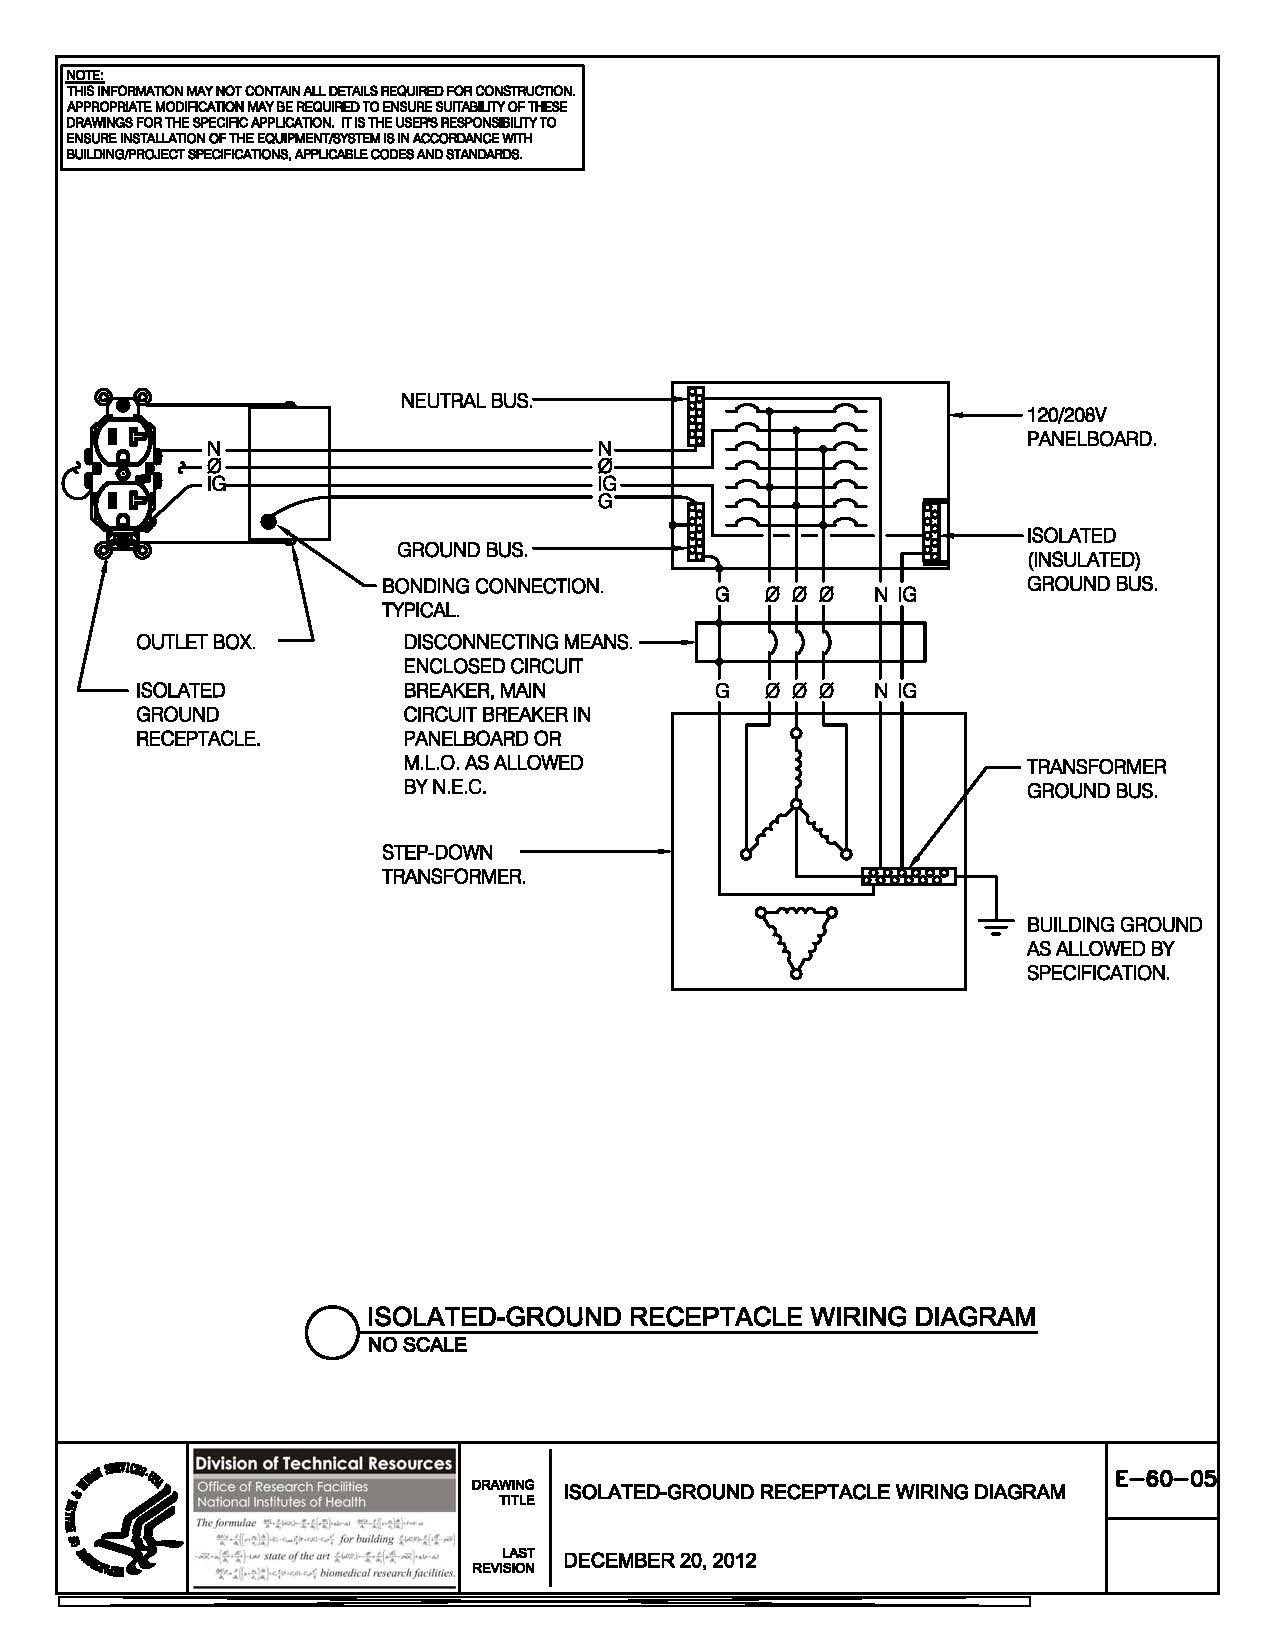 sprinkler system wiring diagram Download-Sprinkler System Wiring Diagram 11-b